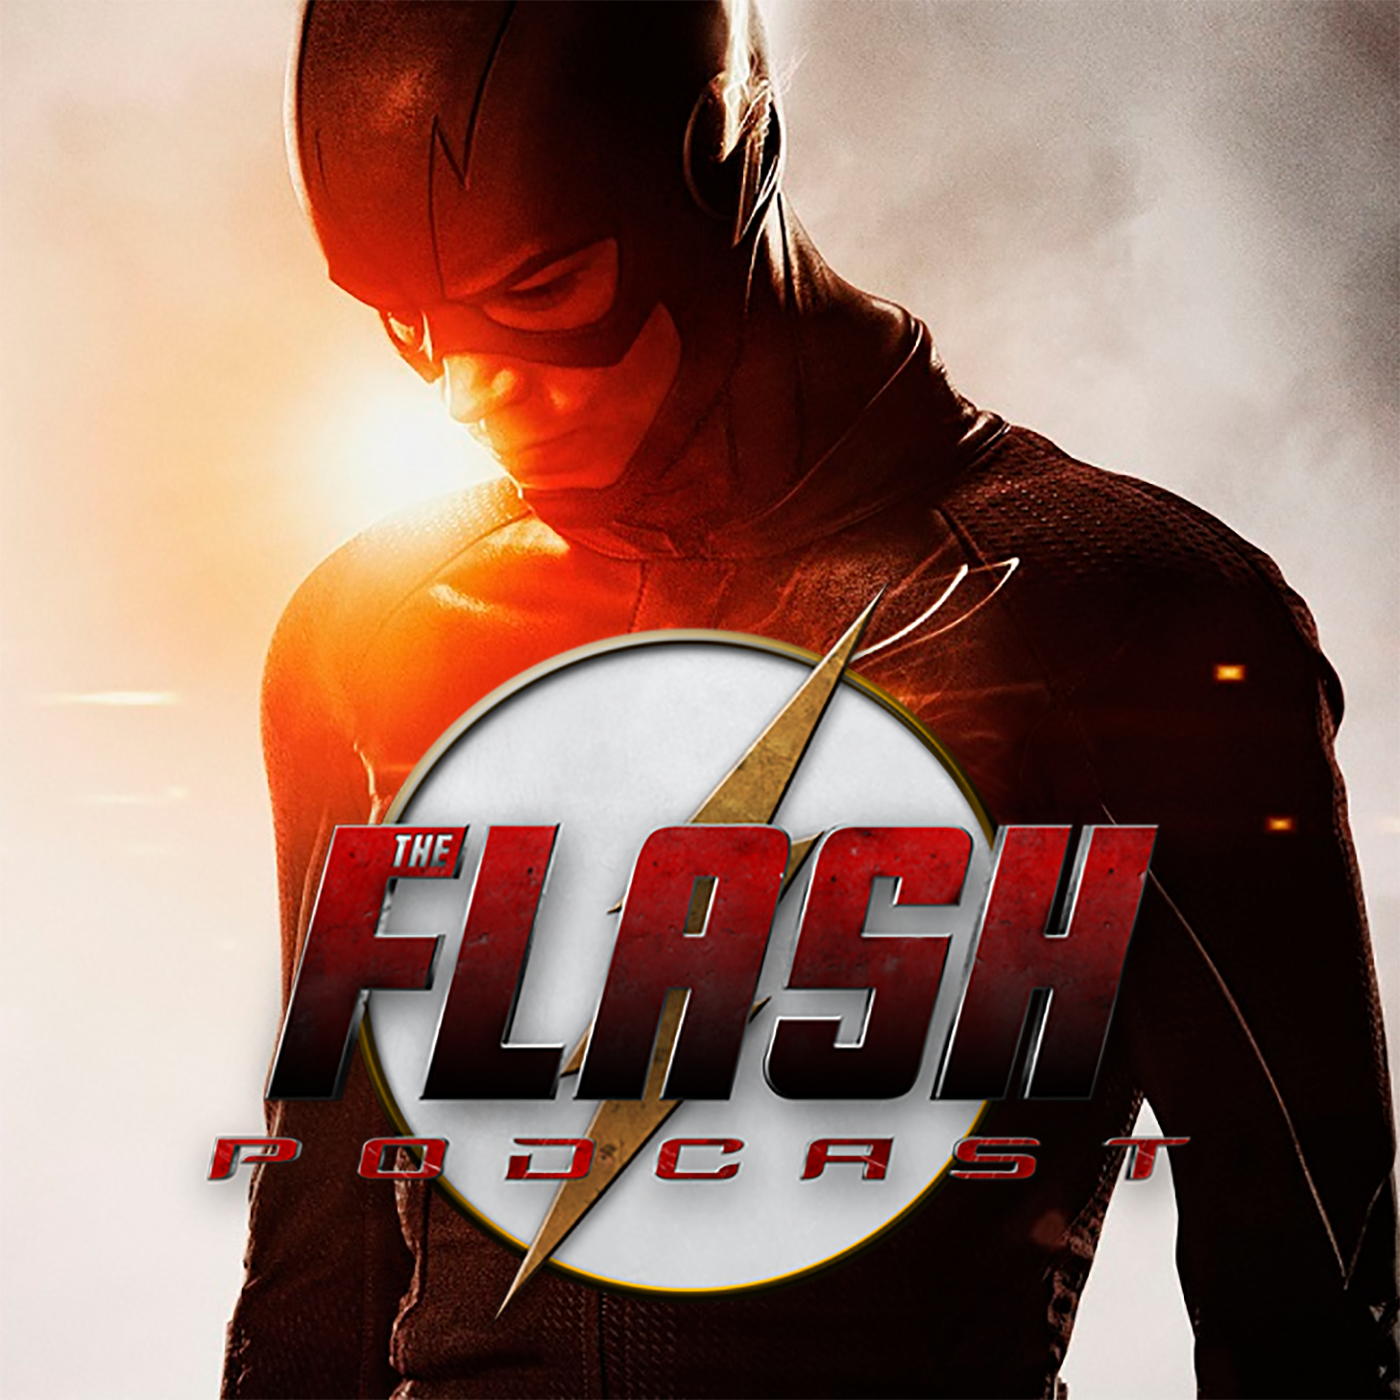 The Flash Podcast (podcast)